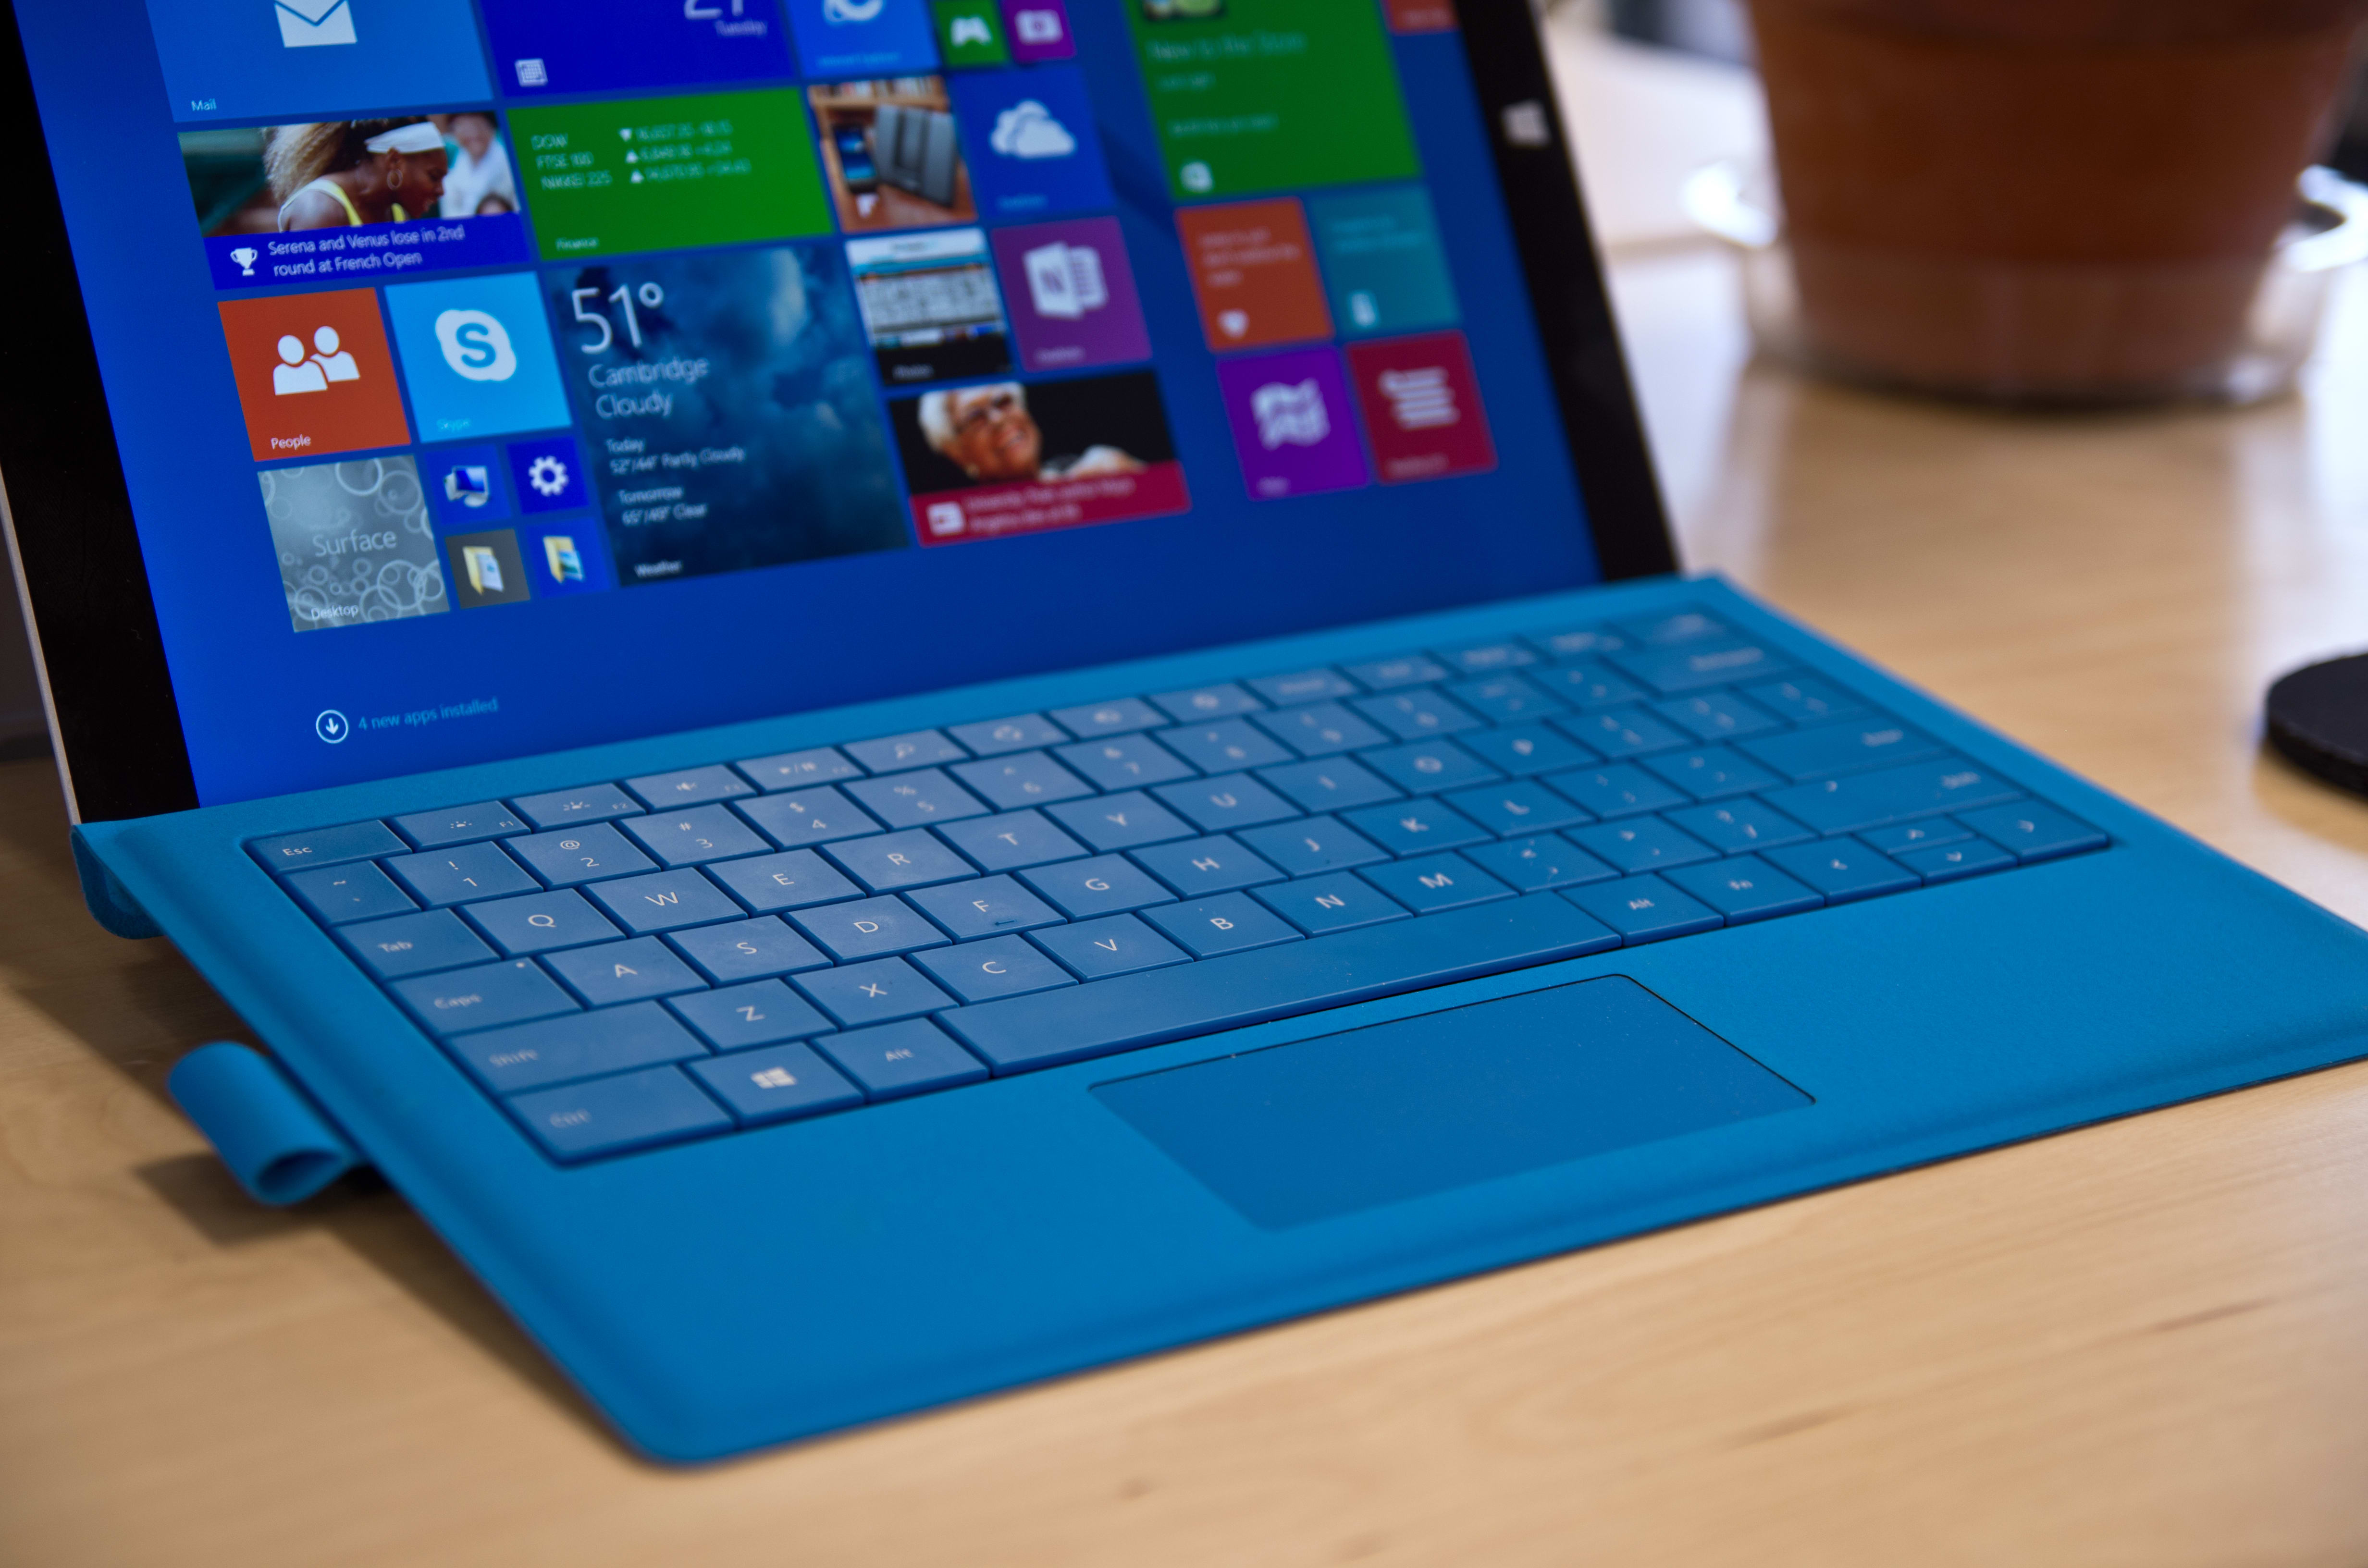 A closer look at the Microsoft Surface Pro 3's type cover.